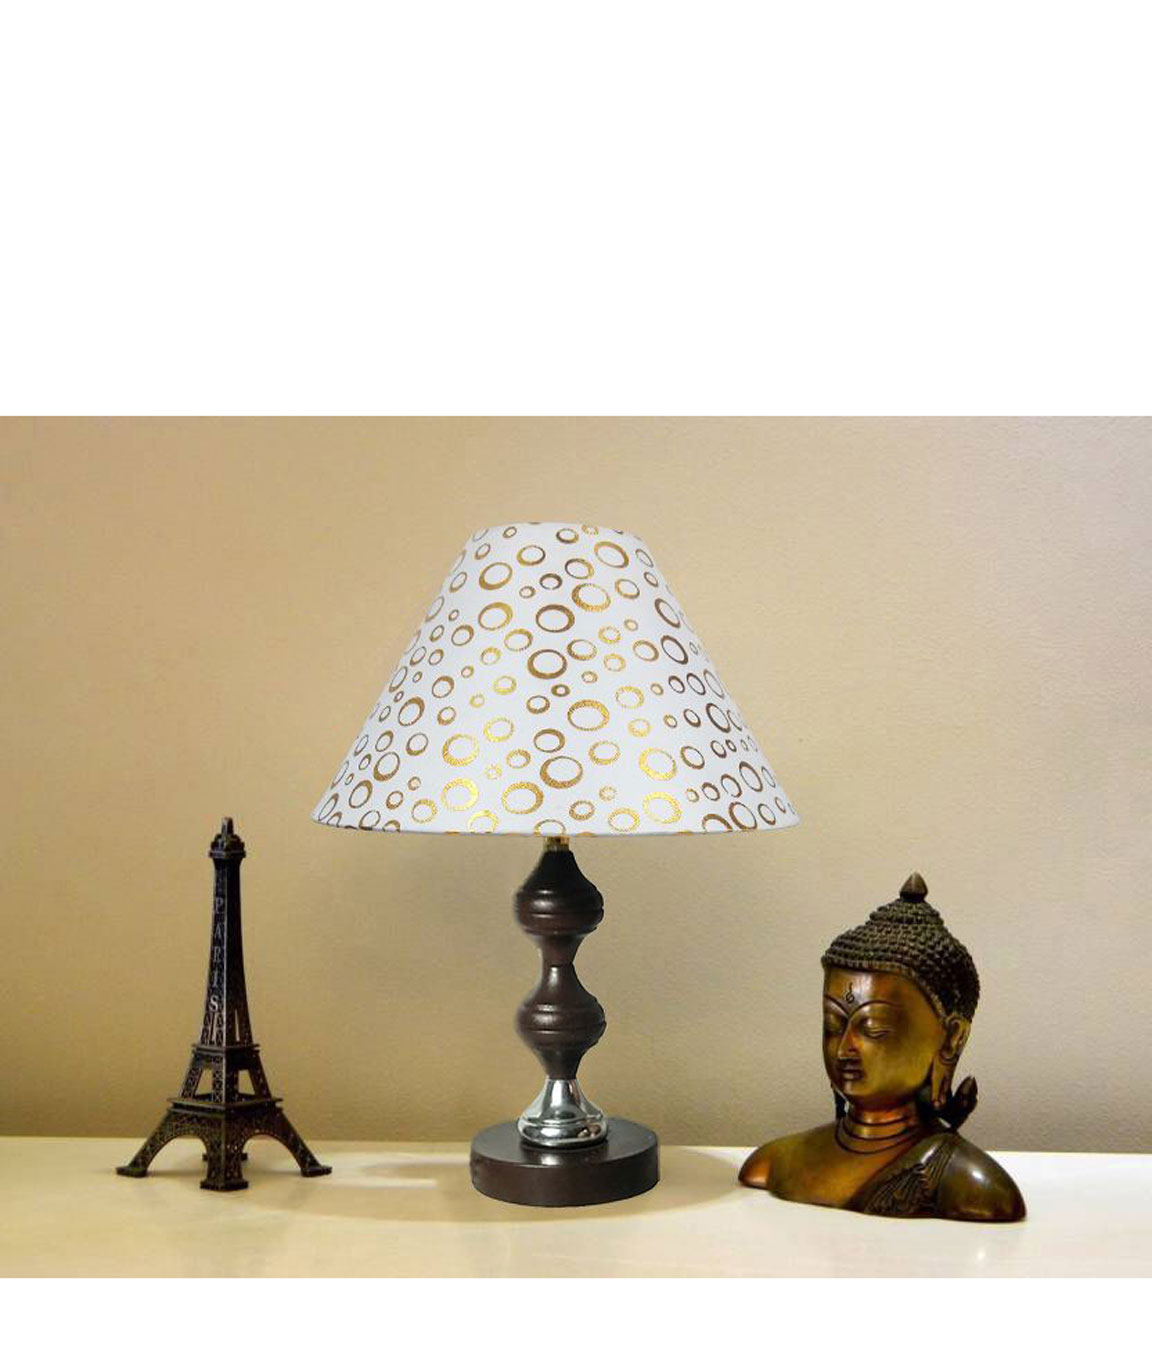 RDC Brown Silver Stand Table Lamp with 10 Inches Round White Golden Polka Dots Designer Lamp Shade